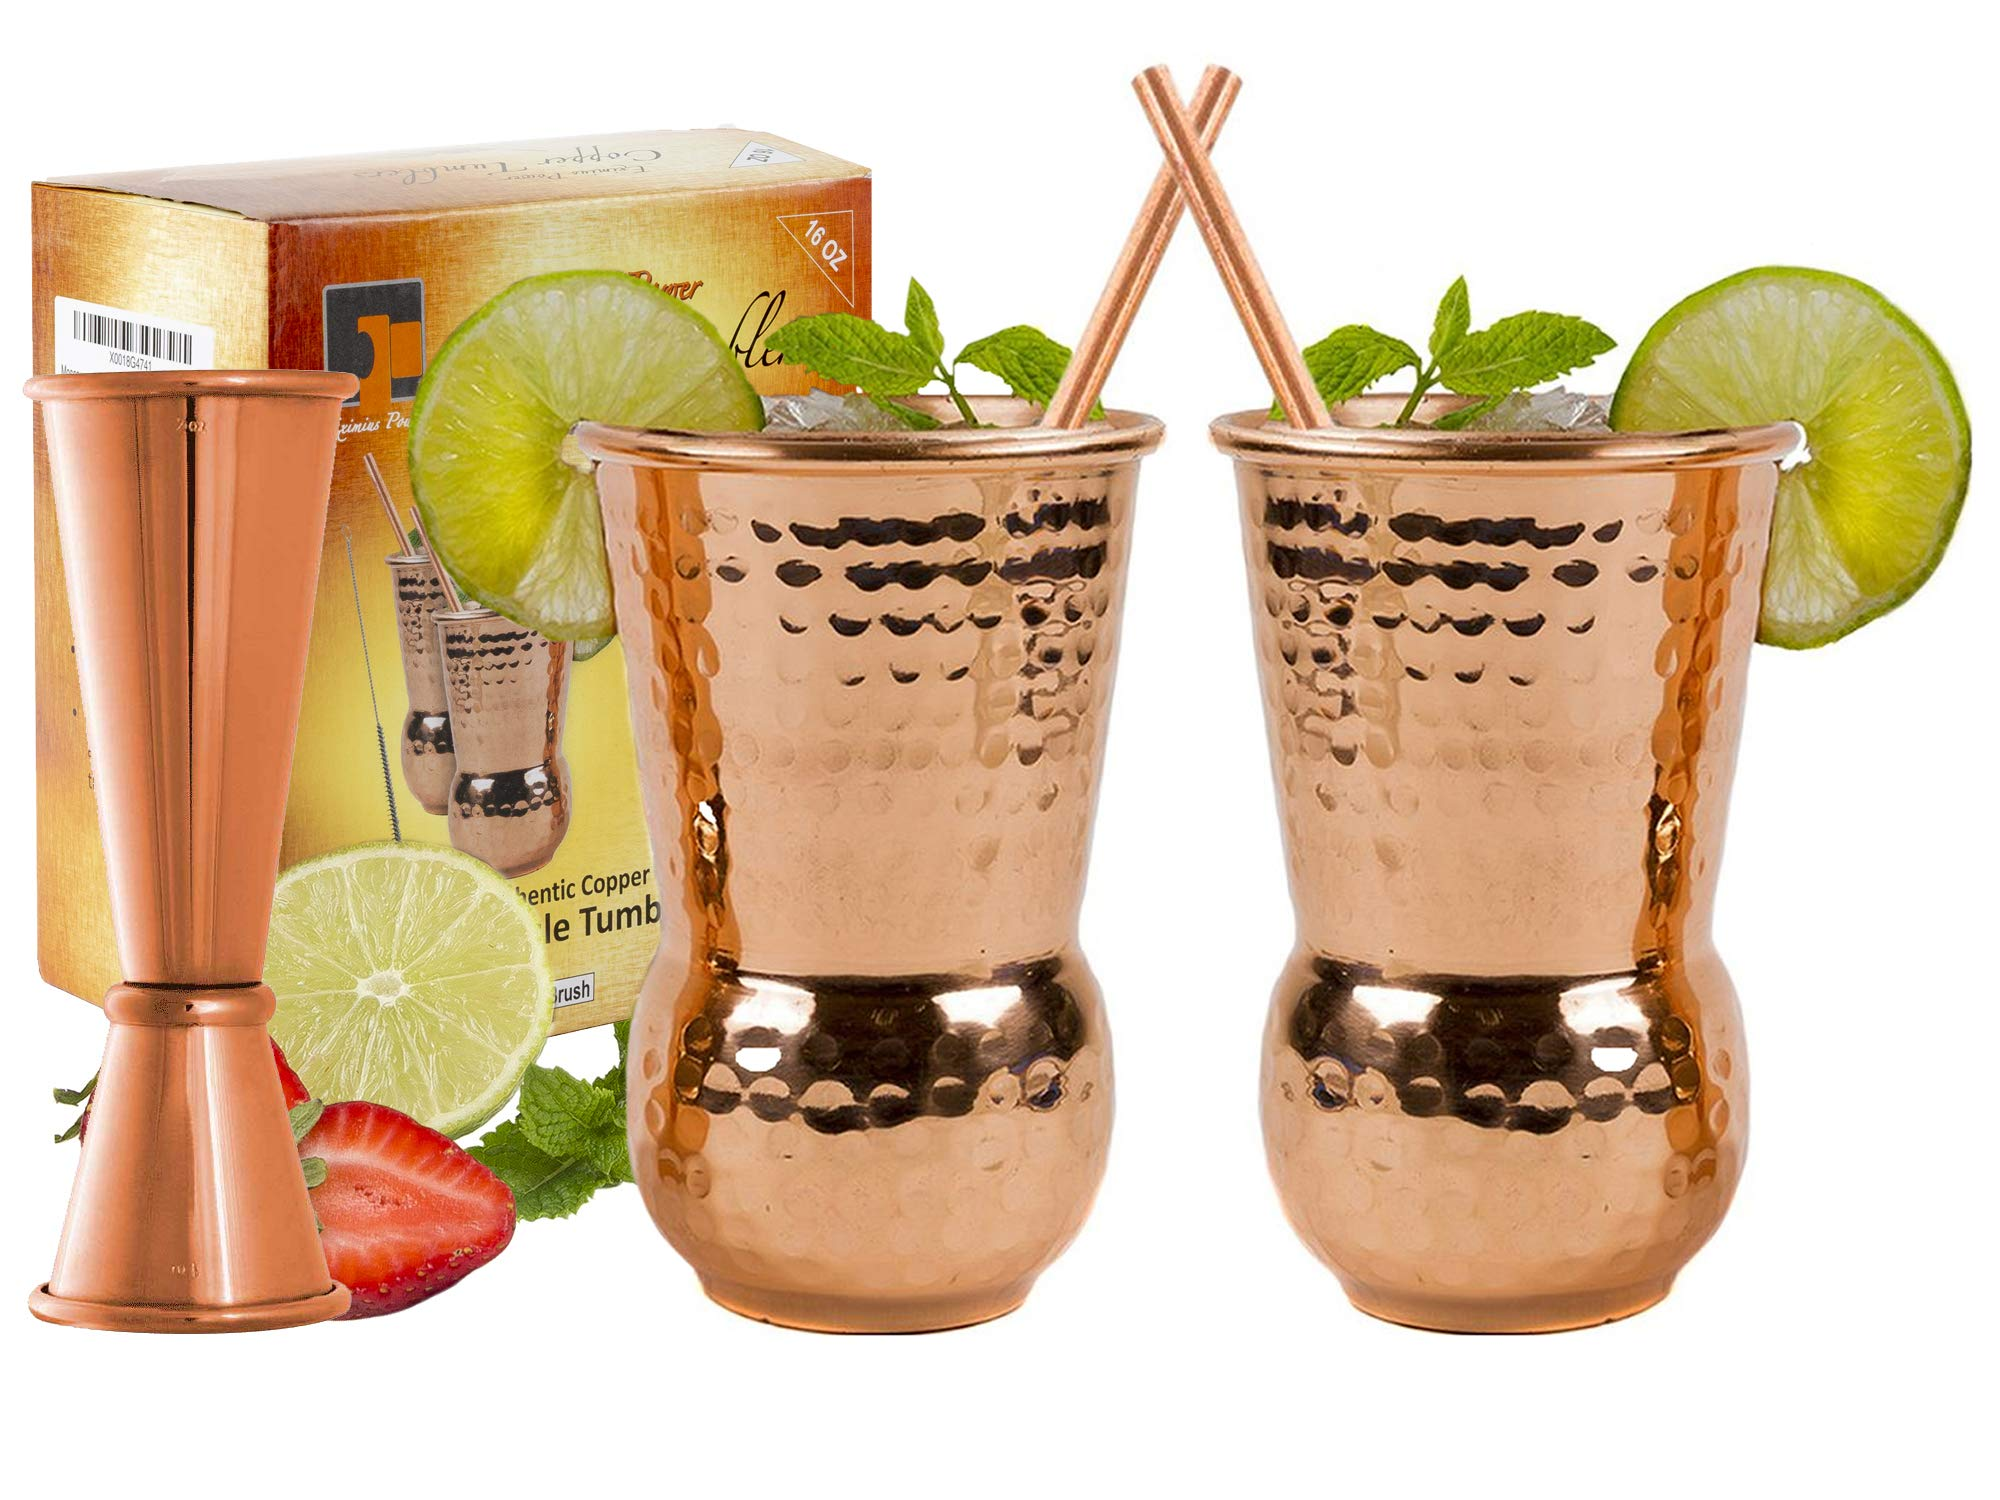 EXTRA THICK HEFTY 20 Gauge Moscow Mule Copper Mugs by Eximius Power | 100% Pure Food Safe Copper Drinking Cups |16 oz Hammered Design Handcrafted Tumblers | Bonus Jigger and 2 Straws (2) by Eximius Power